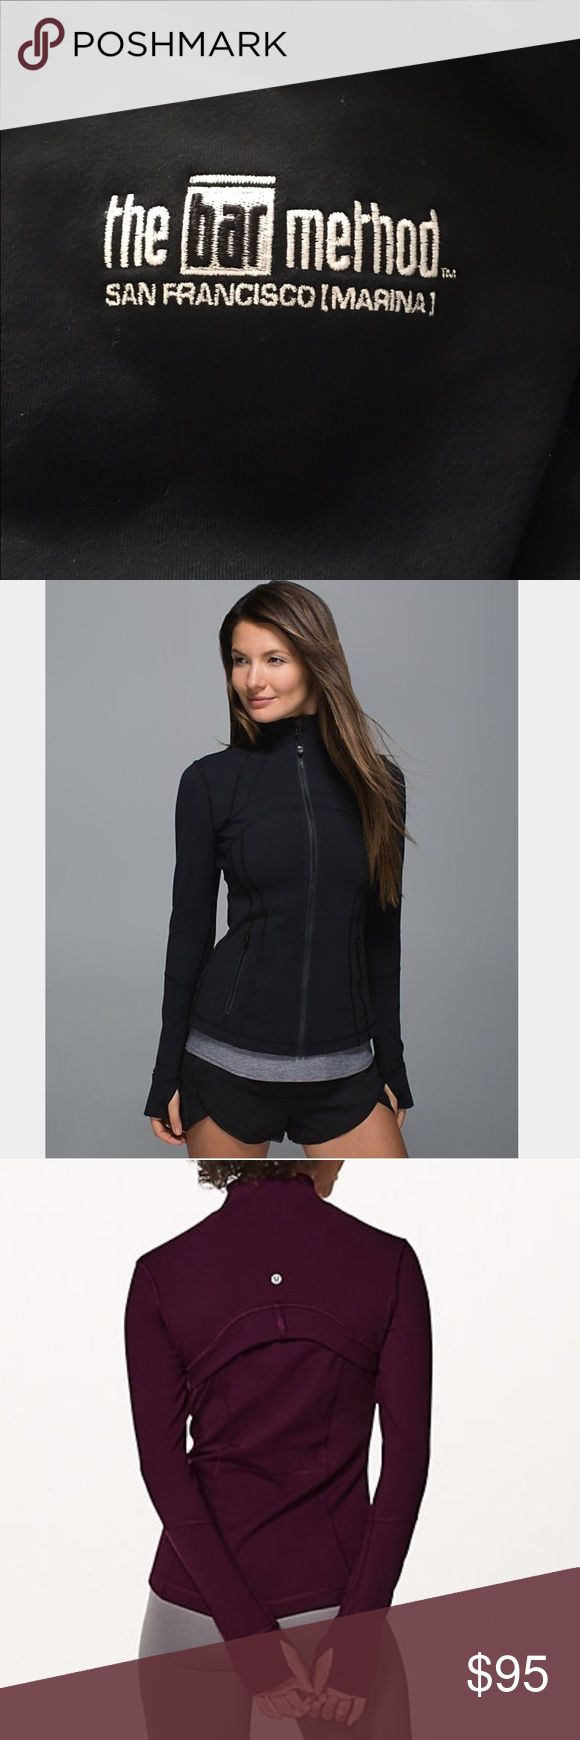 Lululemon Define jacket size 6 Any Bar Method fans?? This is from The Bar Method in San Francisco location, I worked there. Bar Method logo is embroidered on left sleeve. Jacket is in great shape, no fading, piling, snags. 1st & 3rd are stock photos  of jacket. Hands have finger holes and fabric that folds over to keep hands warm. Non smoking & no pet home. Never washed with towels. No trades please. Offers welcome 😘😉 lululemon athletica Jackets & Coats